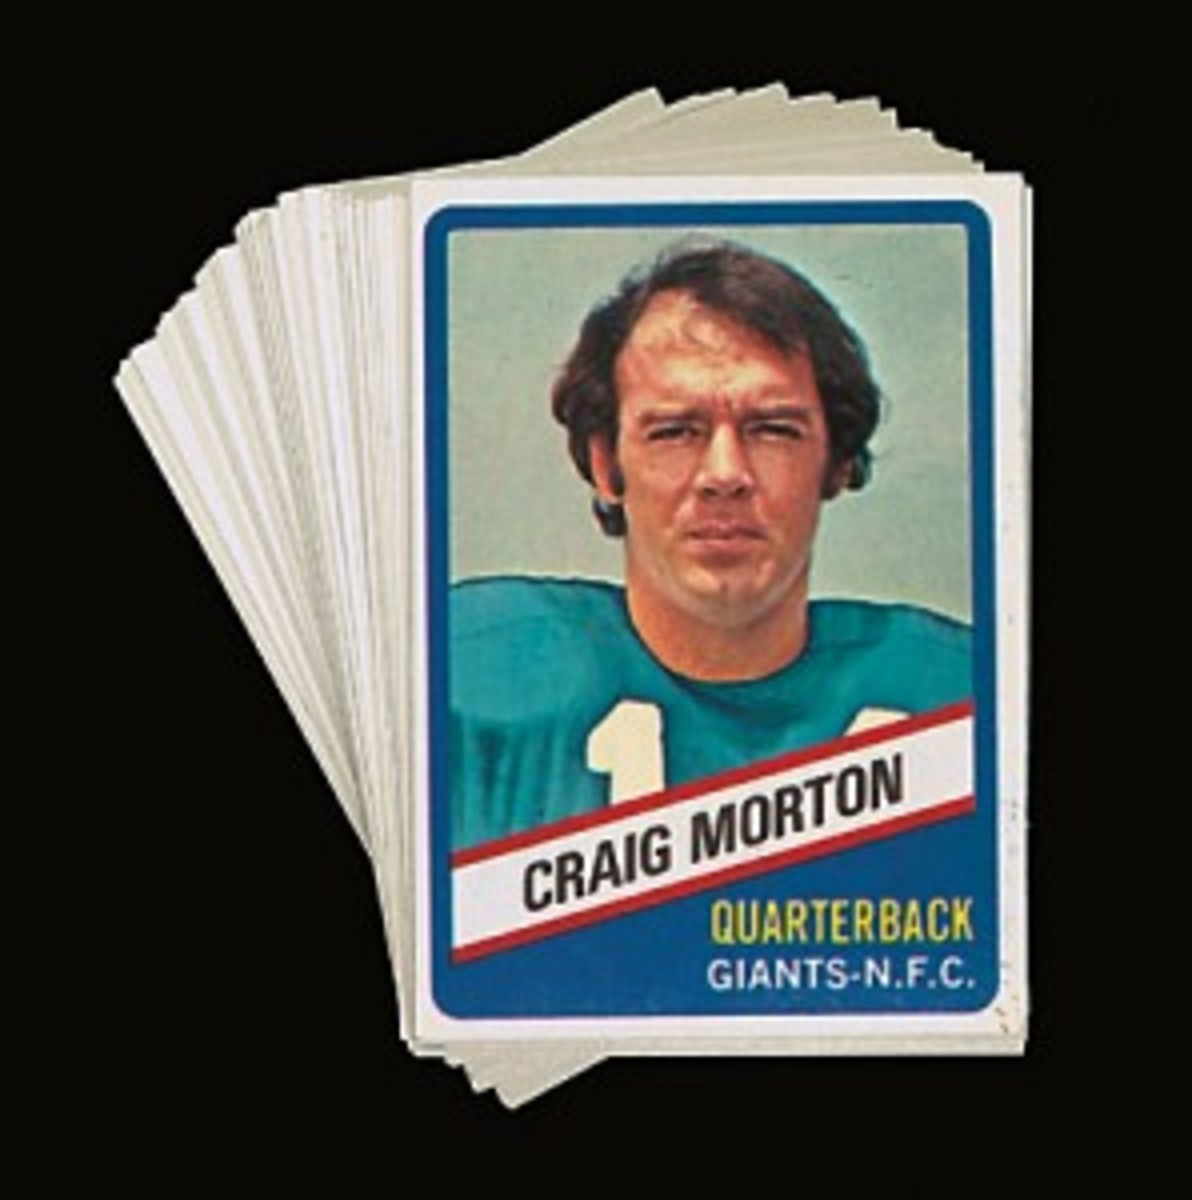 By far, the most abundant Wonder Bread football cards come from the 1976 issue.